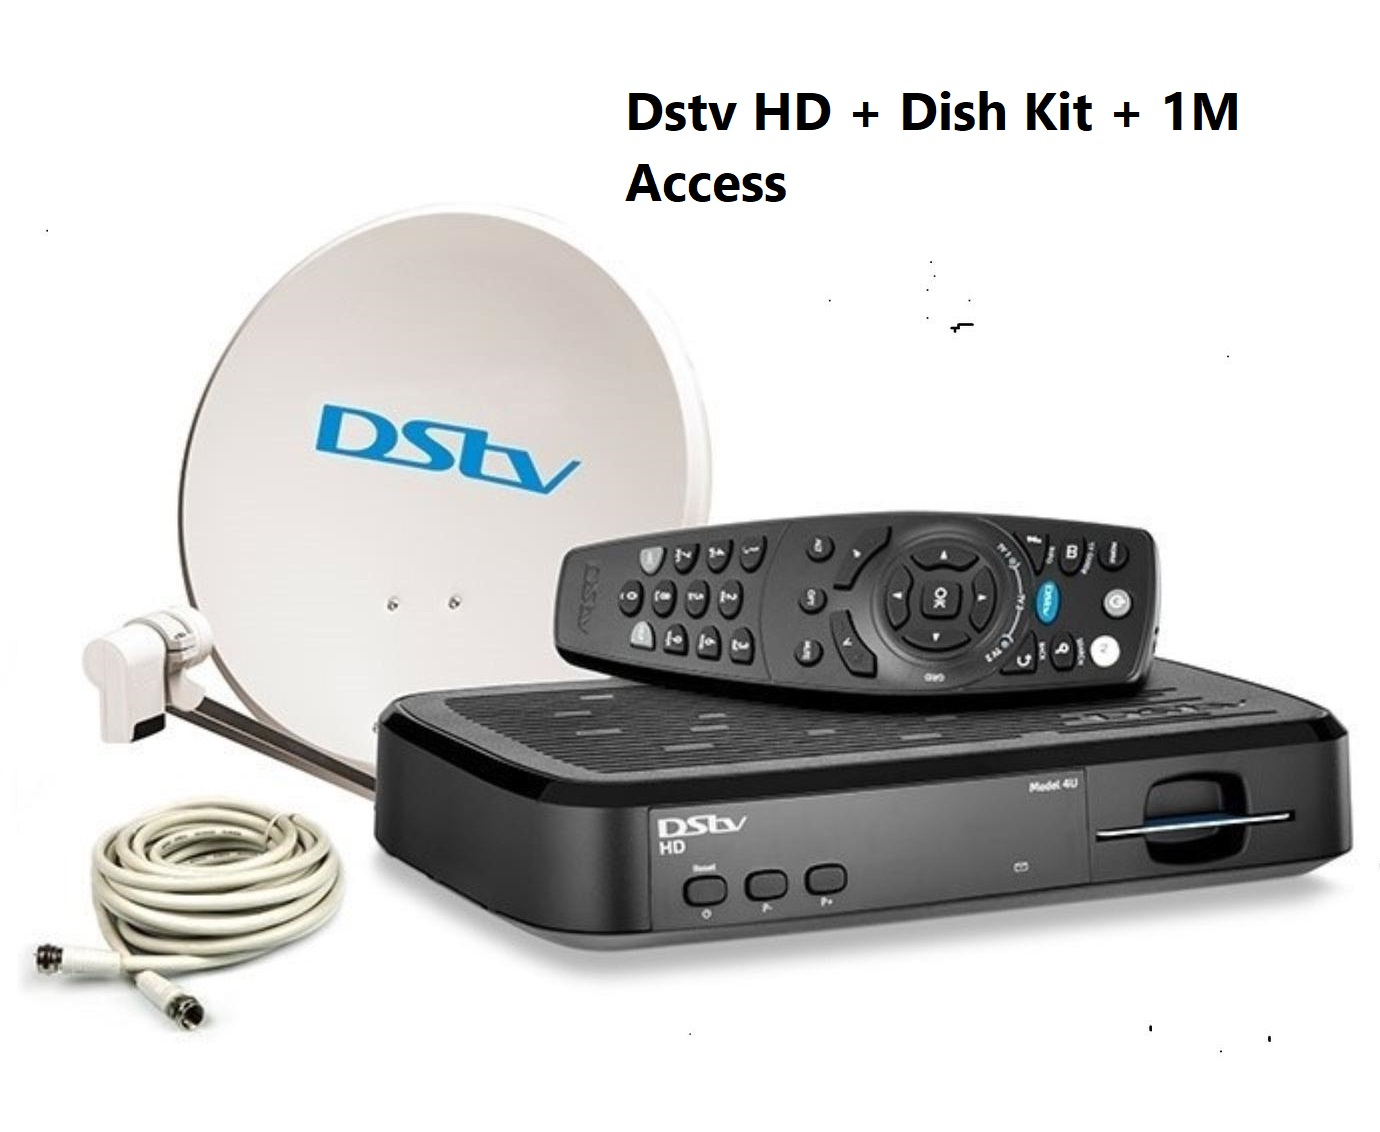 Dstv HD + Dish Kit + 1M Access